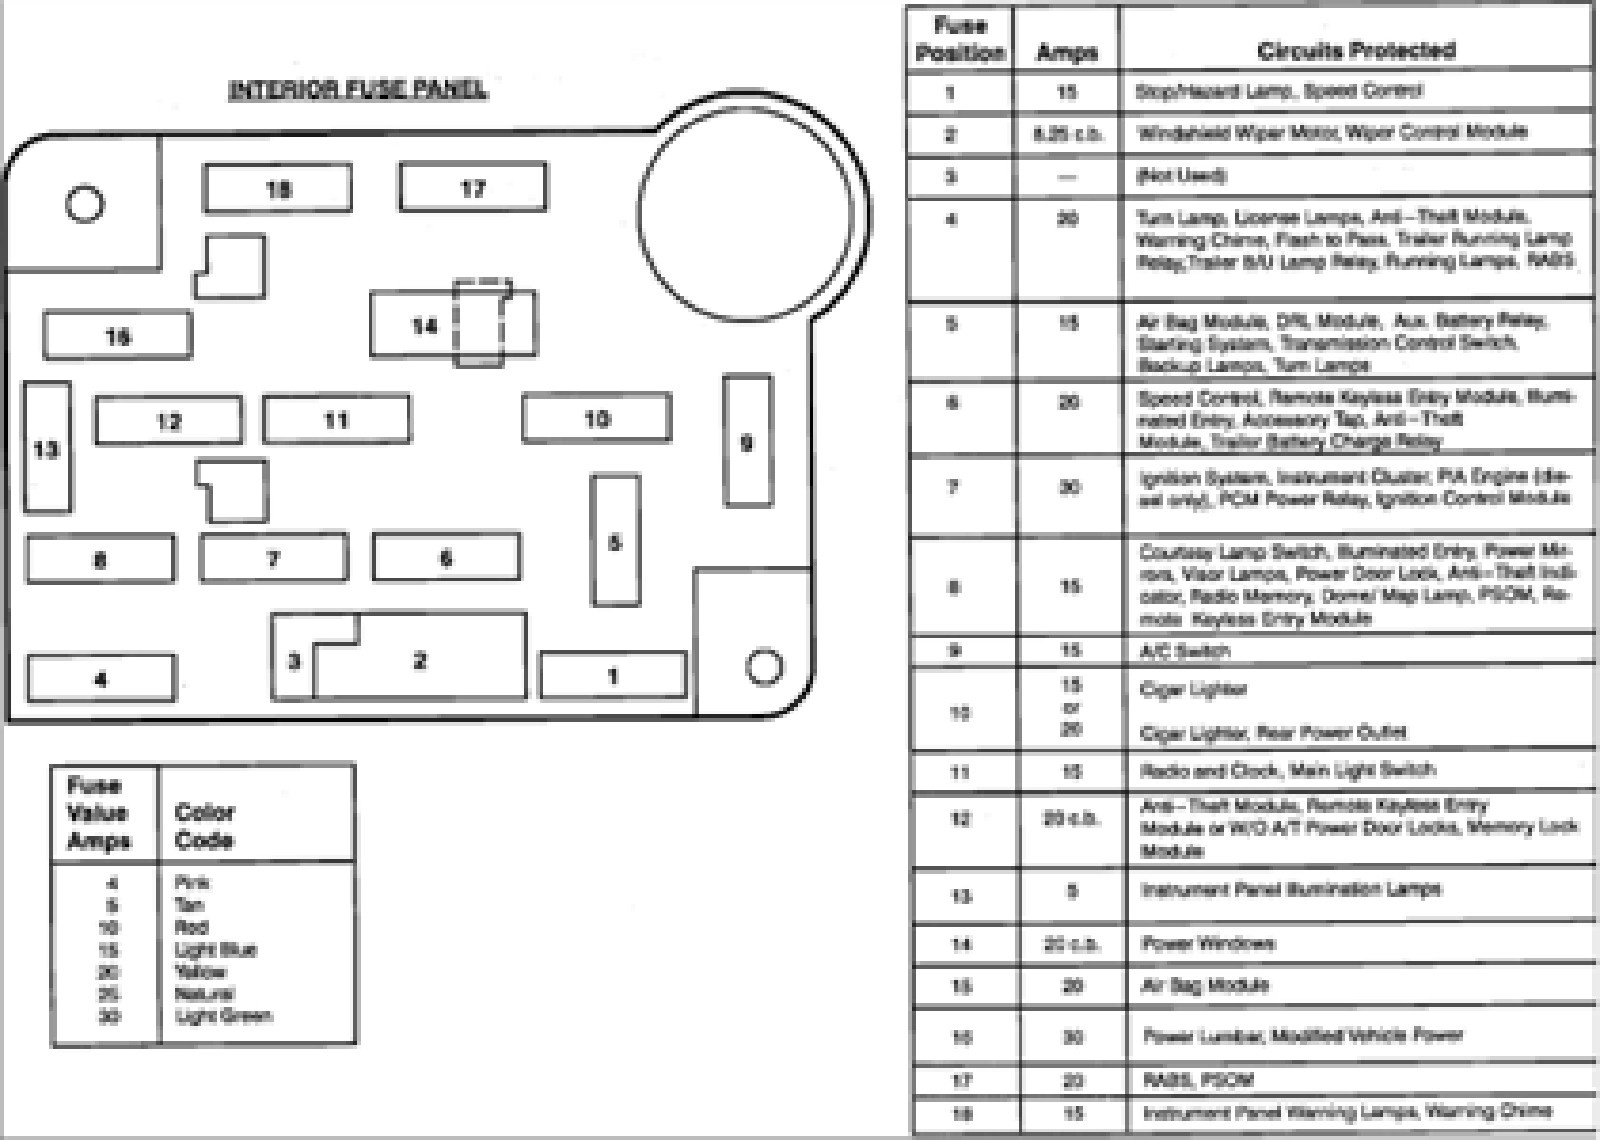 99 F 150 Xlt Fuse Box Diagram | Wiring Liry  Ford F Speaker Wiring Diagram on 1994 f150 alternator replacement, 1994 f150 coolant, 1994 f150 front speakers, 1994 f150 turbo, 1994 f150 fuel pump problems, 1994 f150 stereo wiring, 1994 f150 rims,